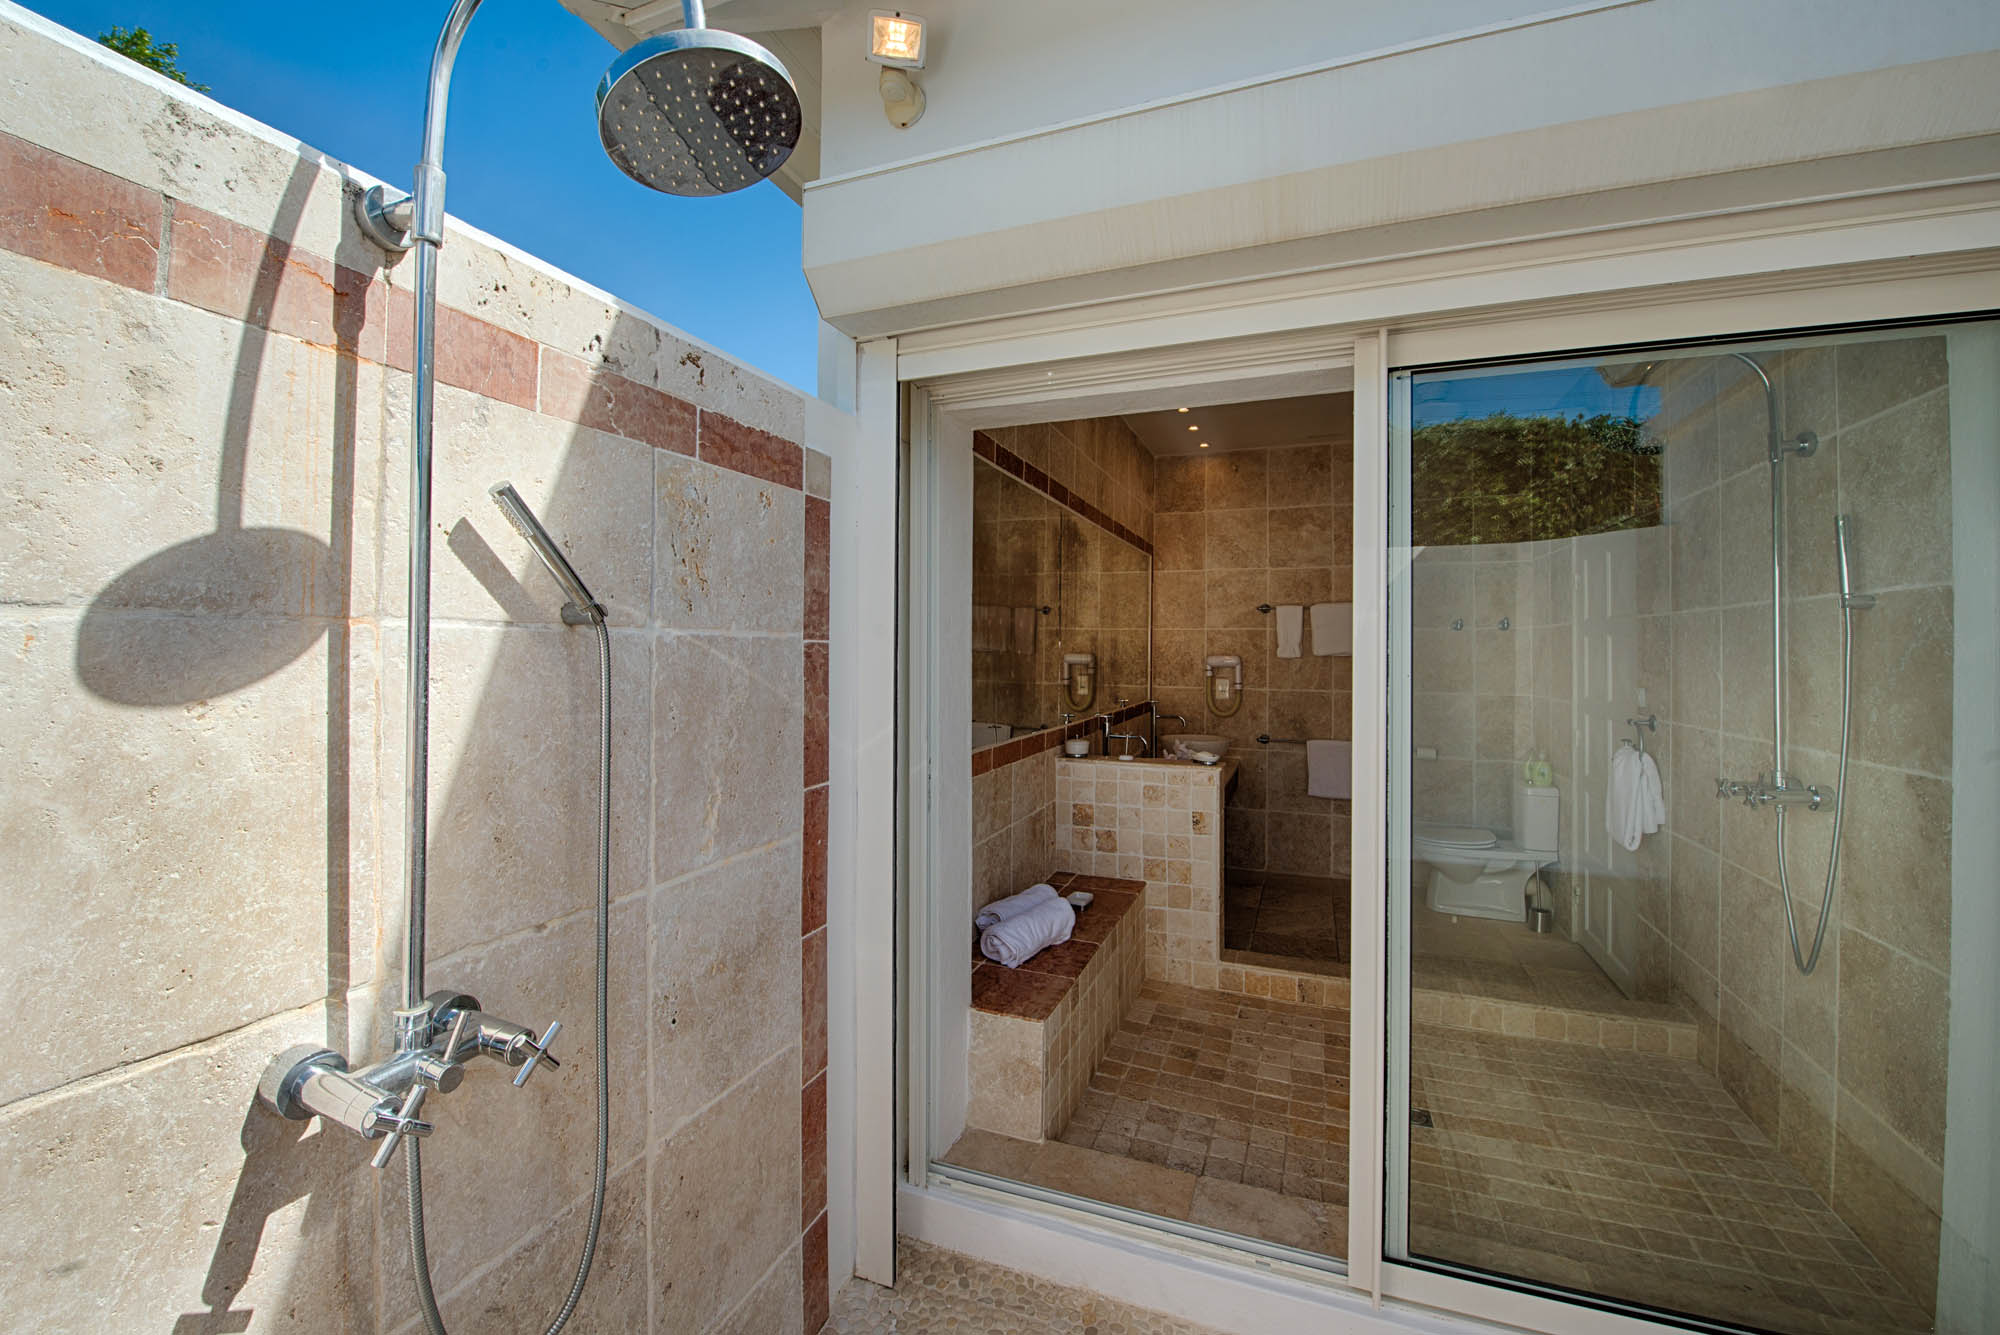 Take a refreshing shower and get warmed by the Caribbean sun at Lune de Miel, Baie Longue, Terres Basses, St. Martin villa rental, French West Indies.